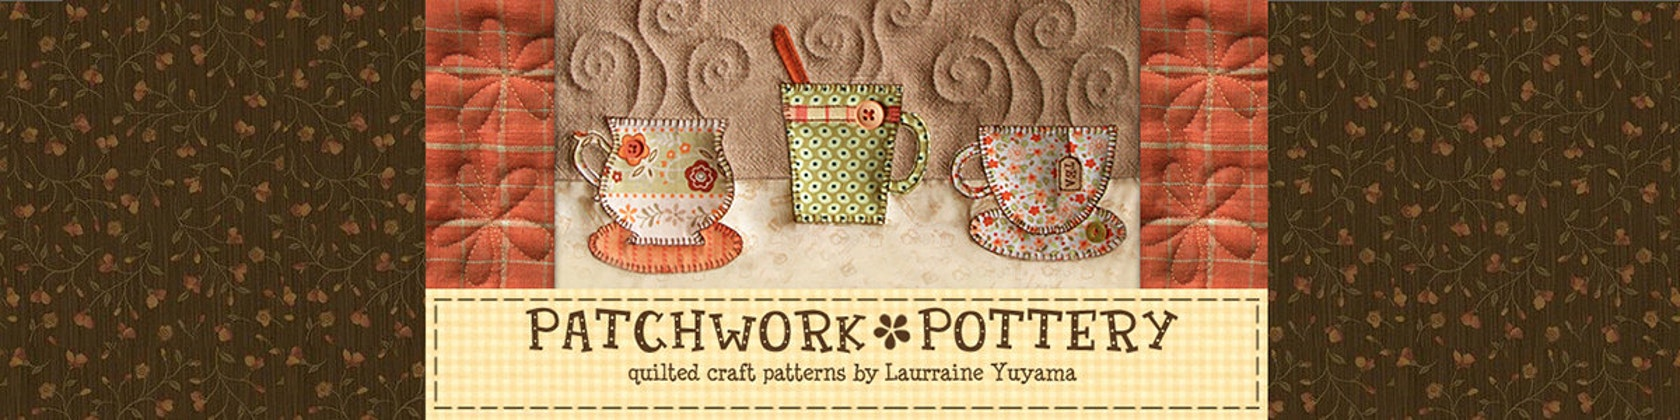 Digital Quilted Craft Patterns by PatchworkPottery on Etsy